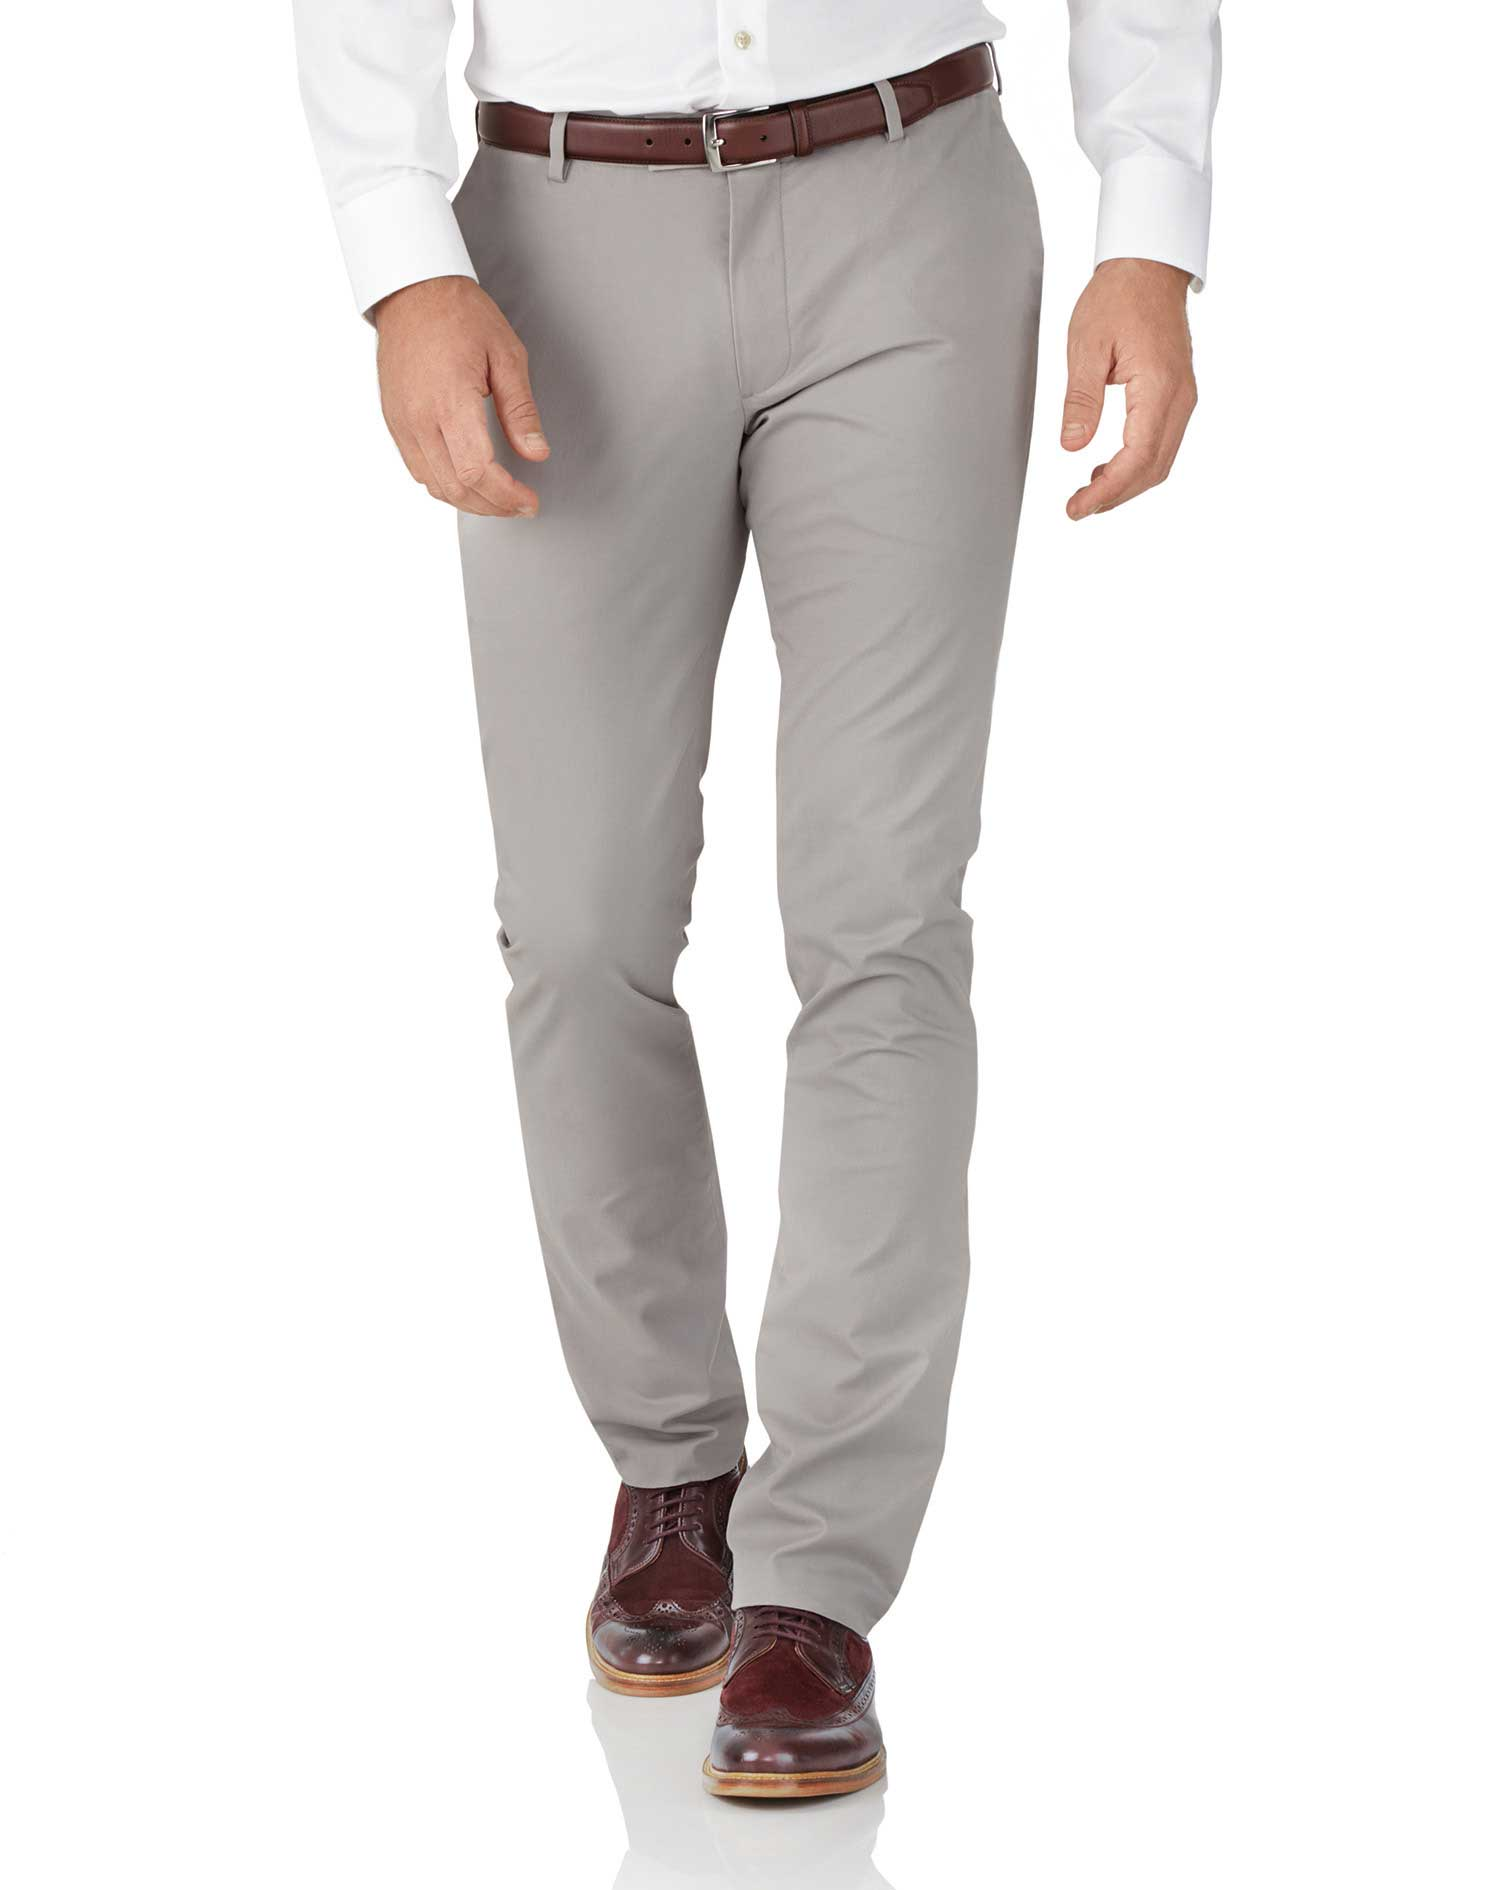 Grey Extra Slim Fit Stretch Cotton Chino Trousers Size W32 L30 by Charles Tyrwhitt